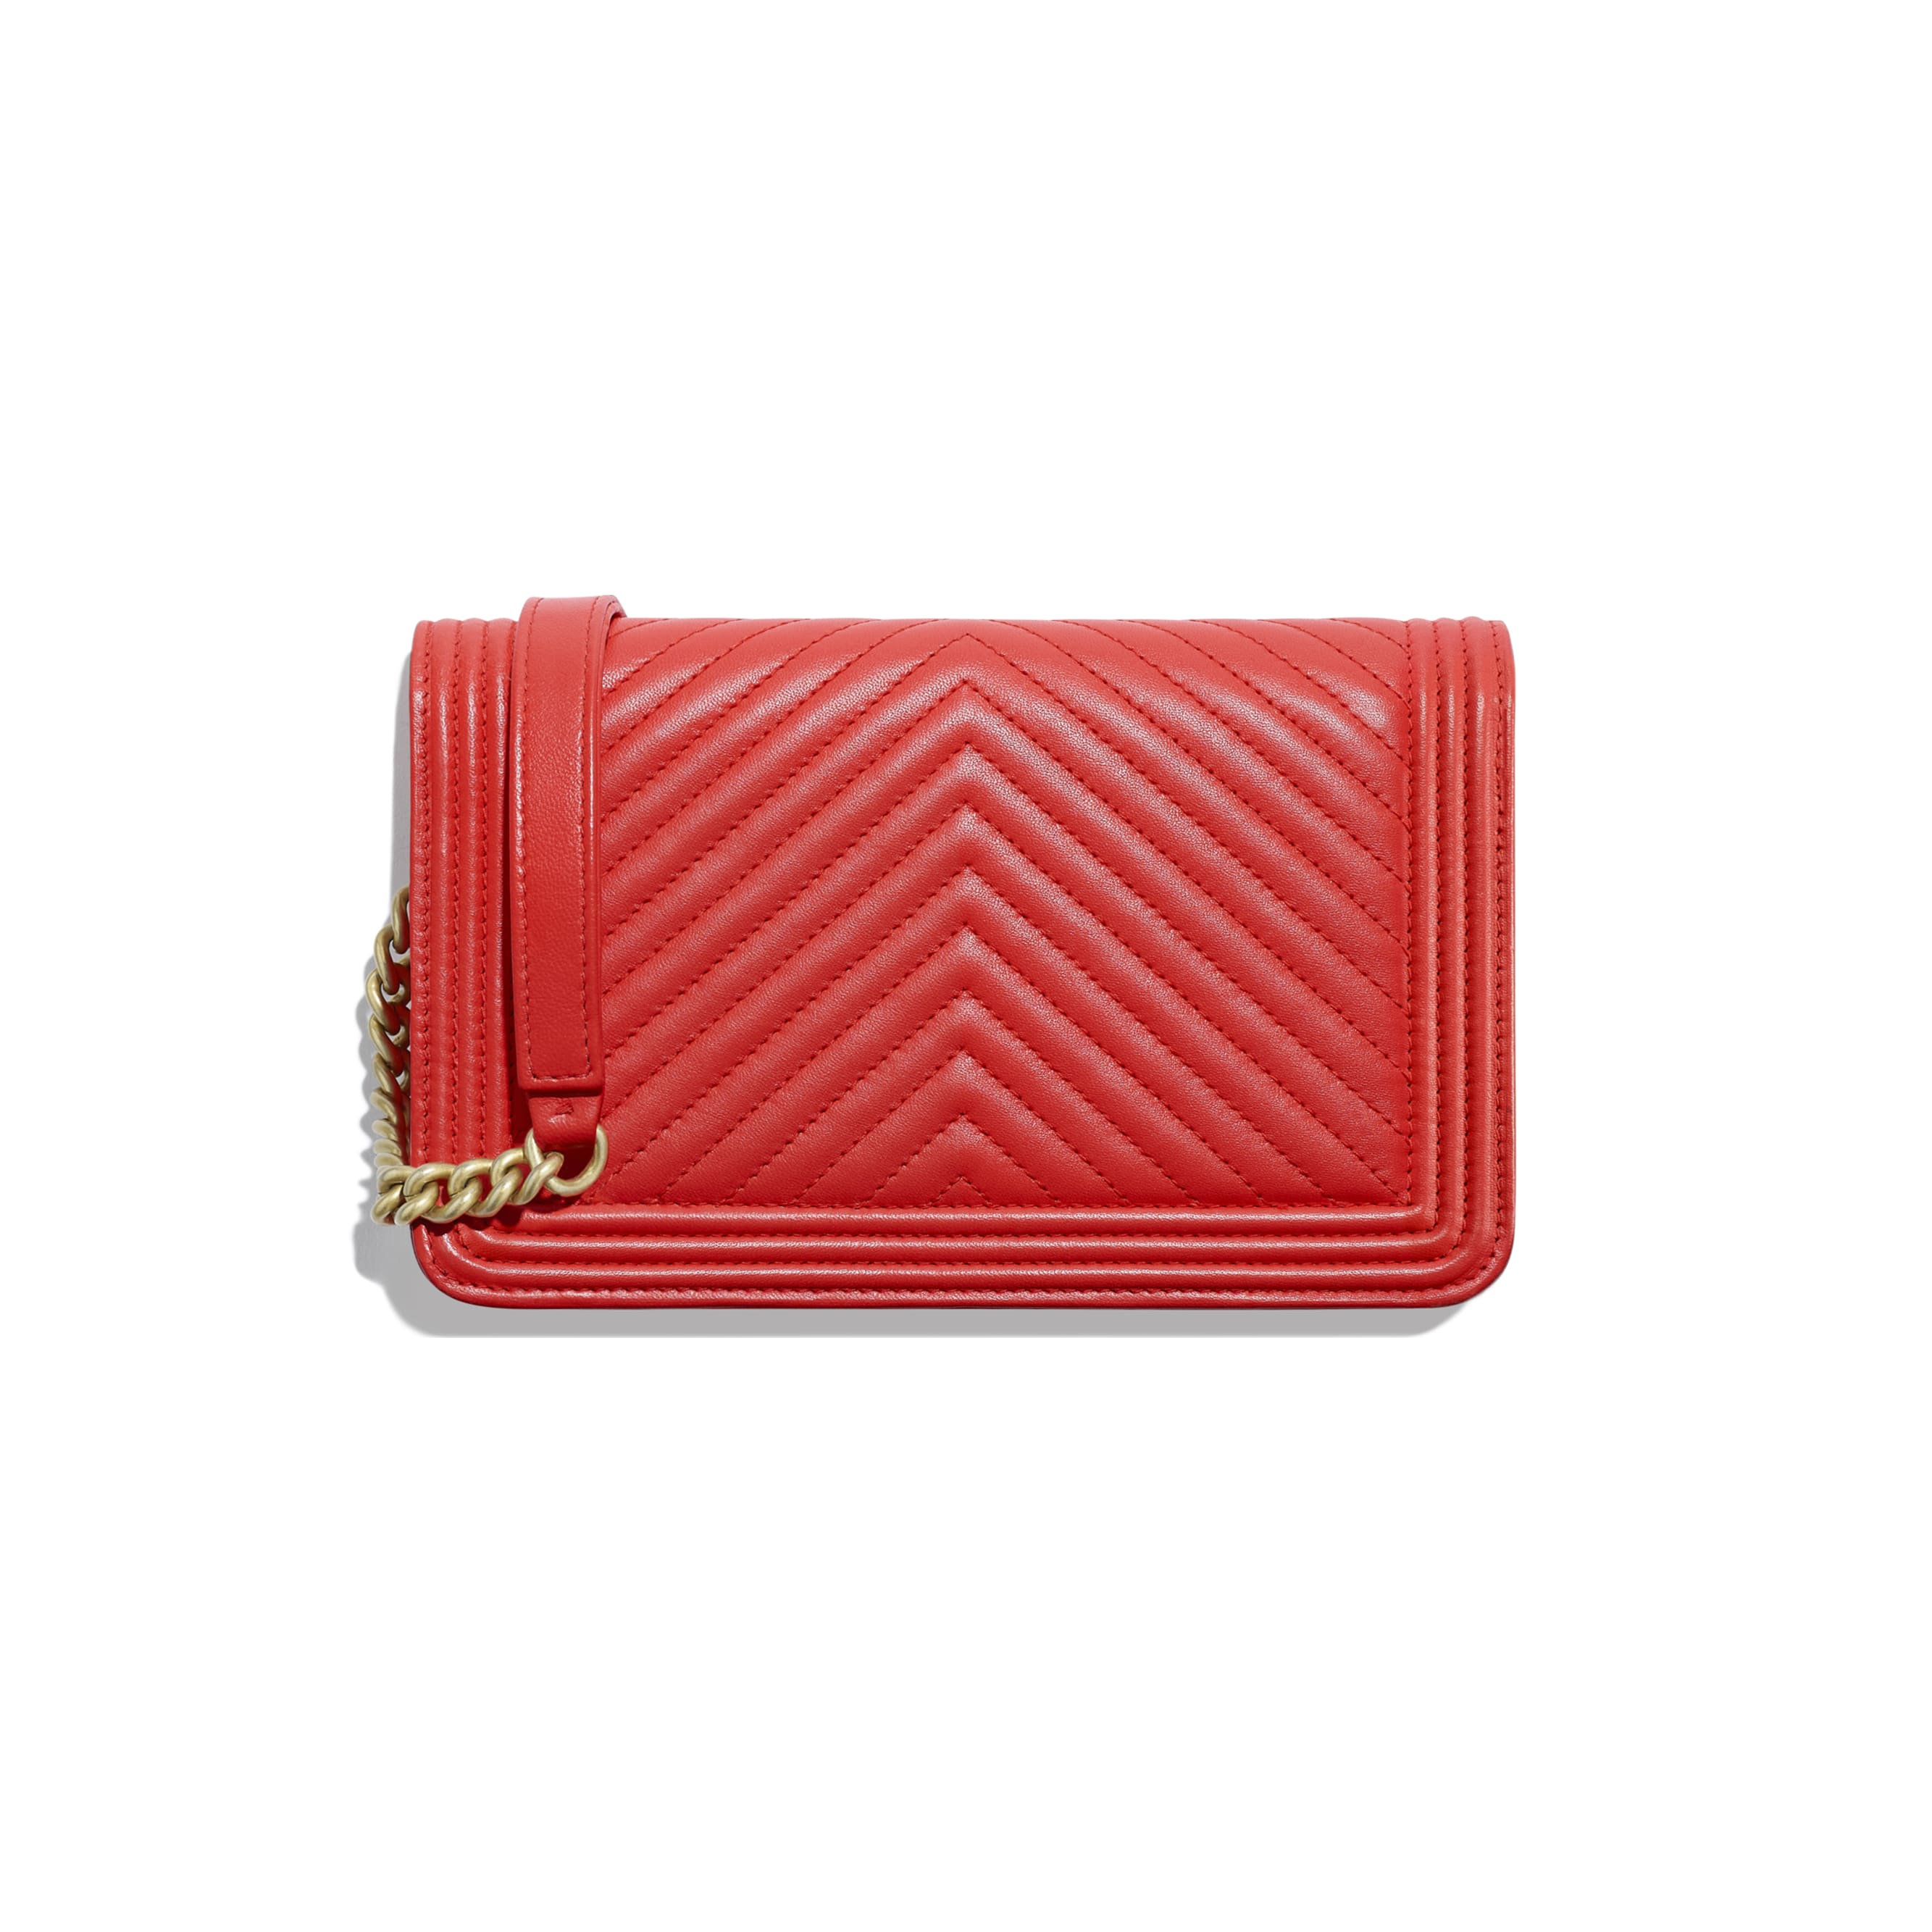 BOY CHANEL Wallet On Chain - Red - Lambskin - CHANEL - Alternative view - see standard sized version